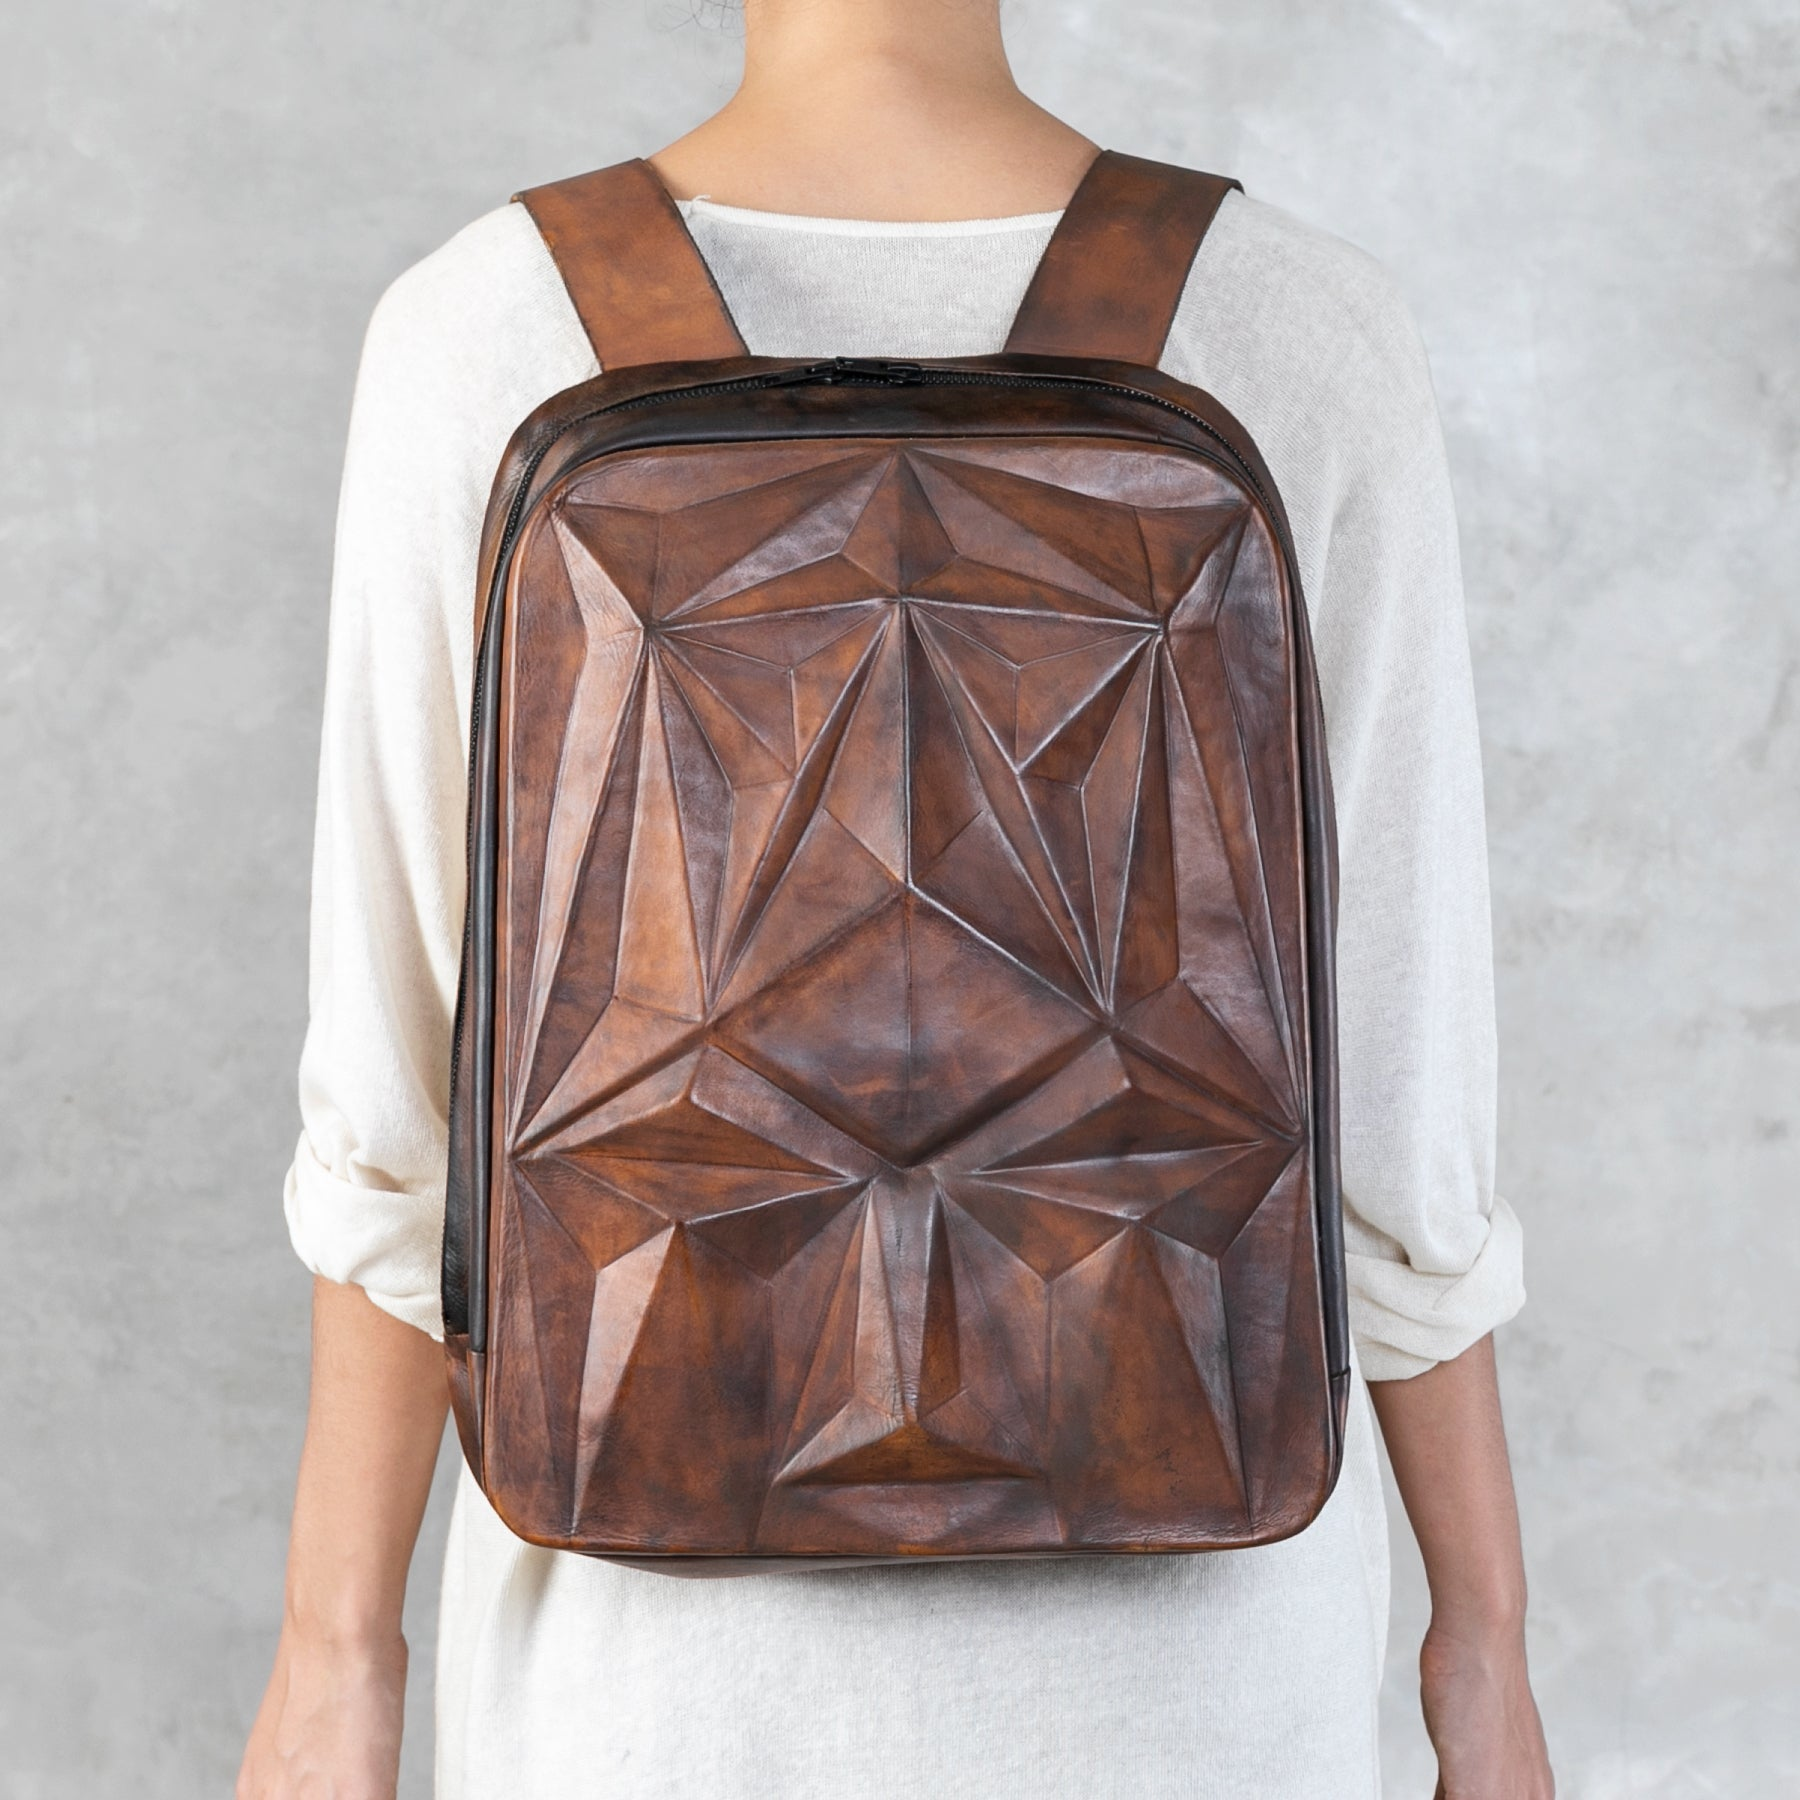 Facet Backpack - Walnut